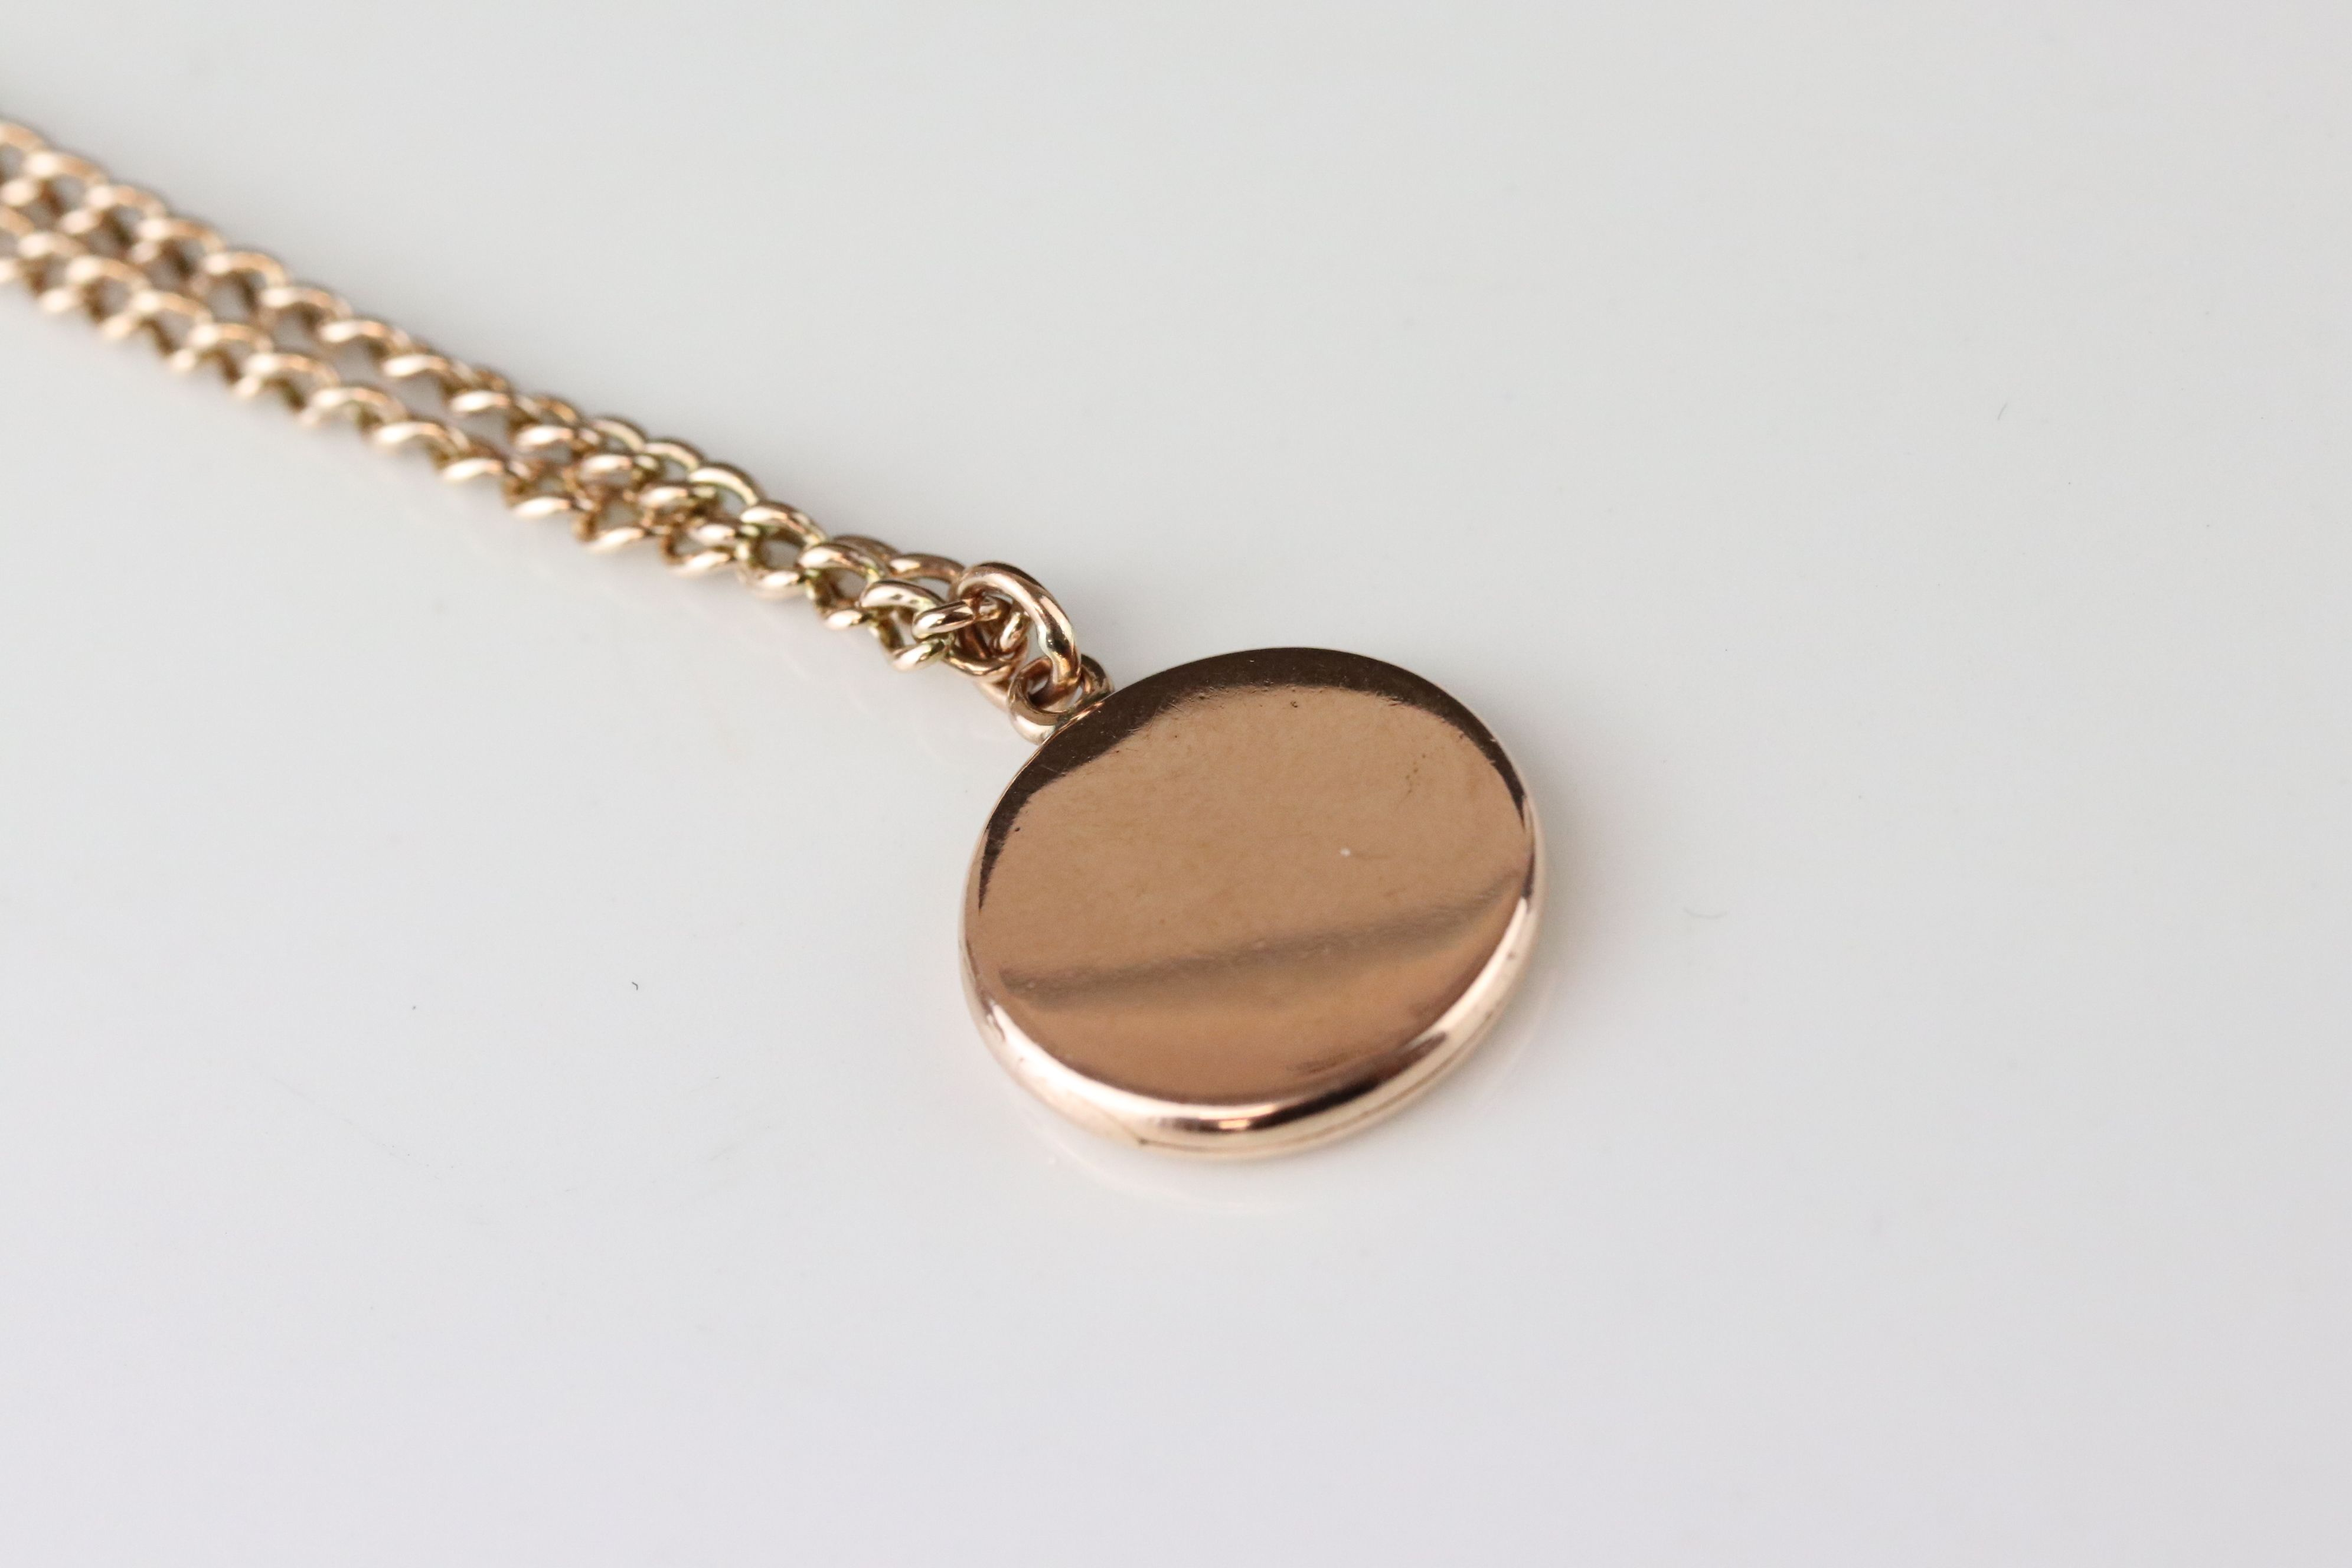 10ct yellow gold locket pendant engraved Beryl, containing hair to glazed compartment, on 9ct rose - Image 3 of 3